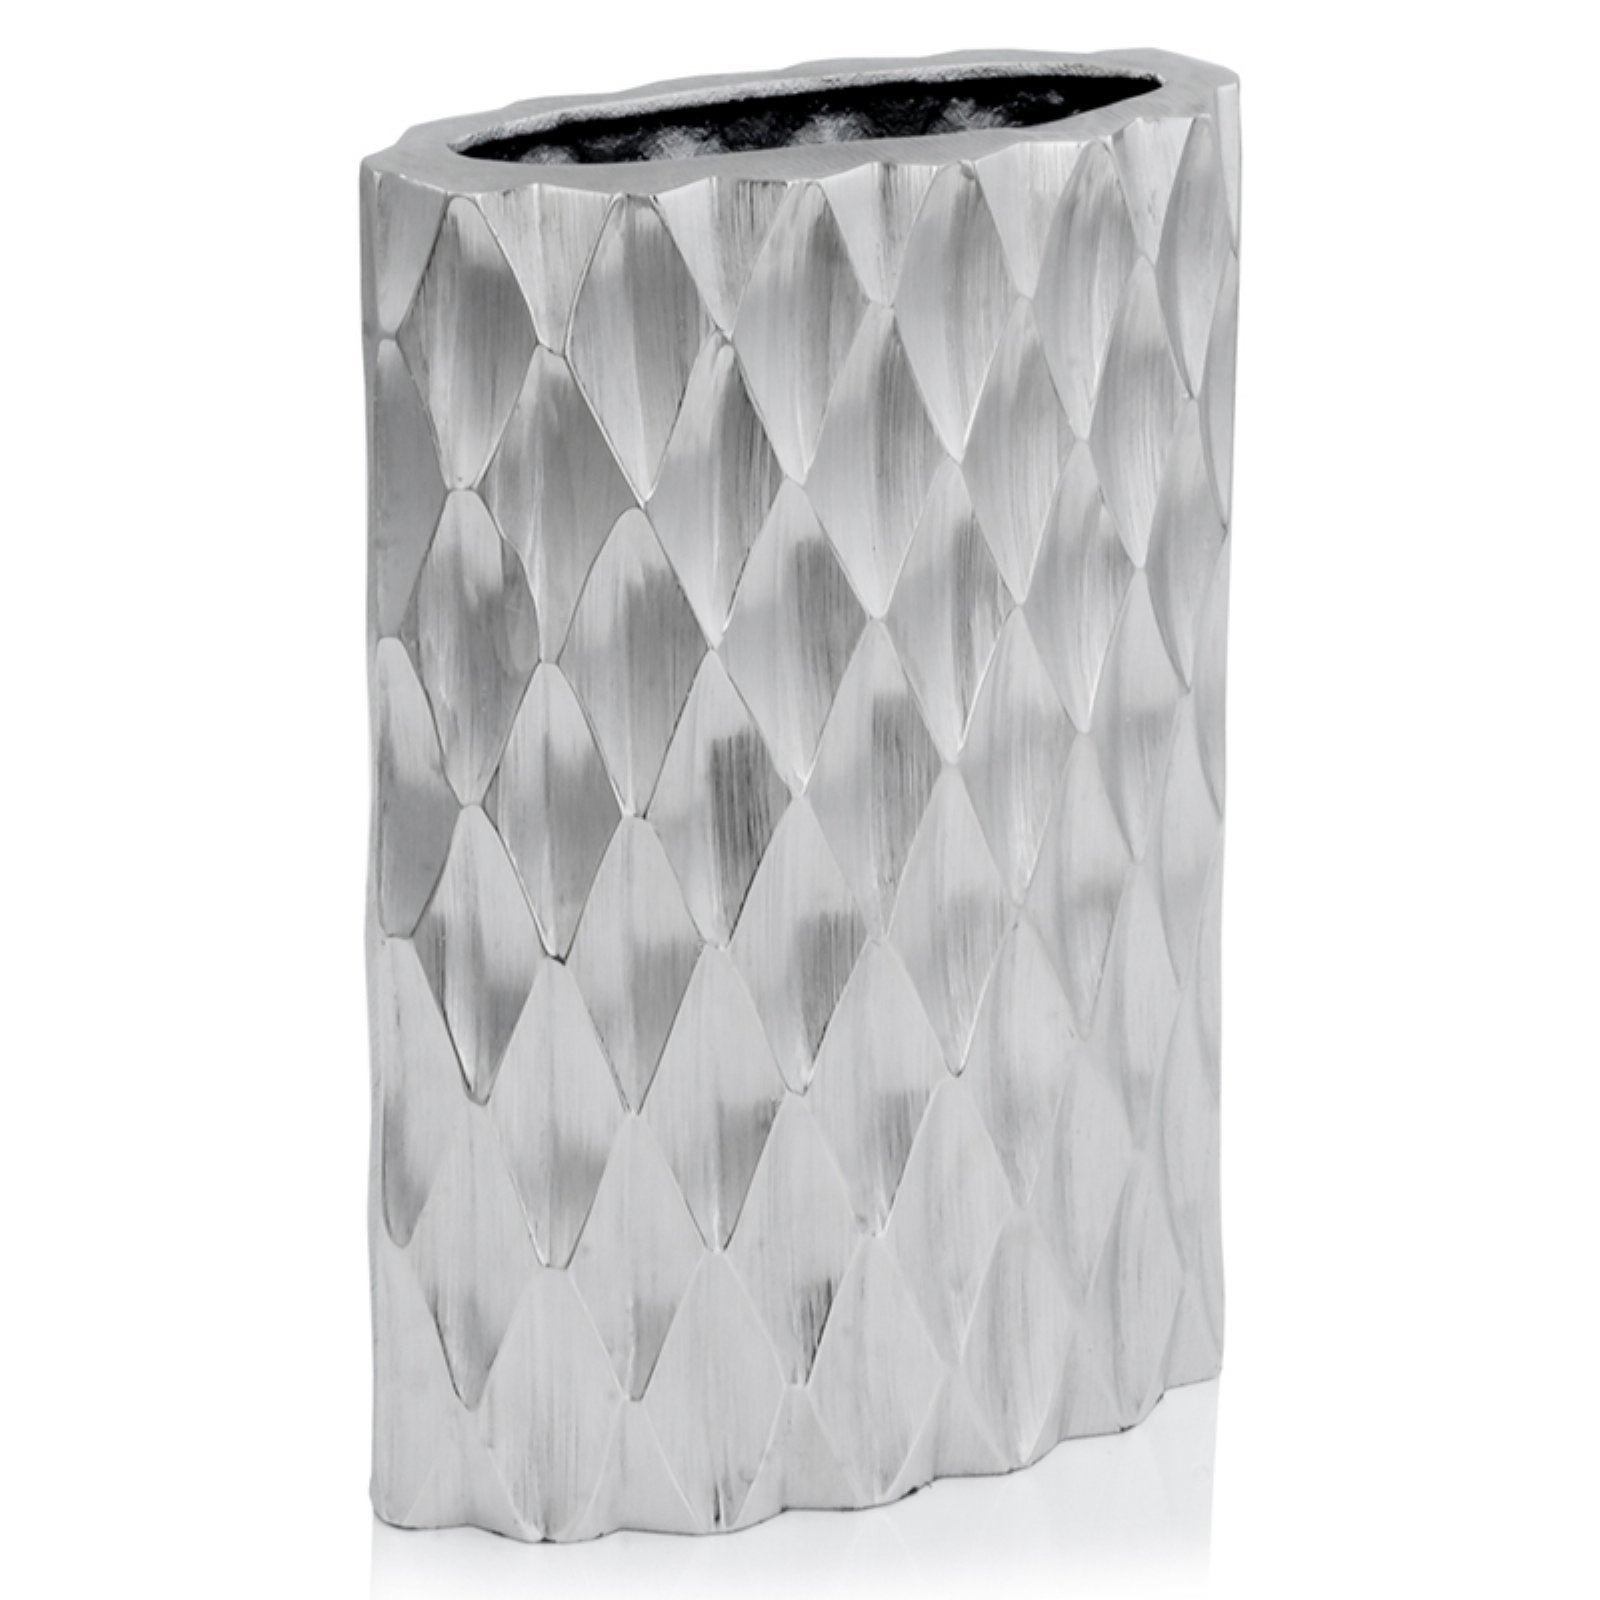 Modern Day Accents Arlequin Oval Diamond Vase, Size: Small - Casa Muebles